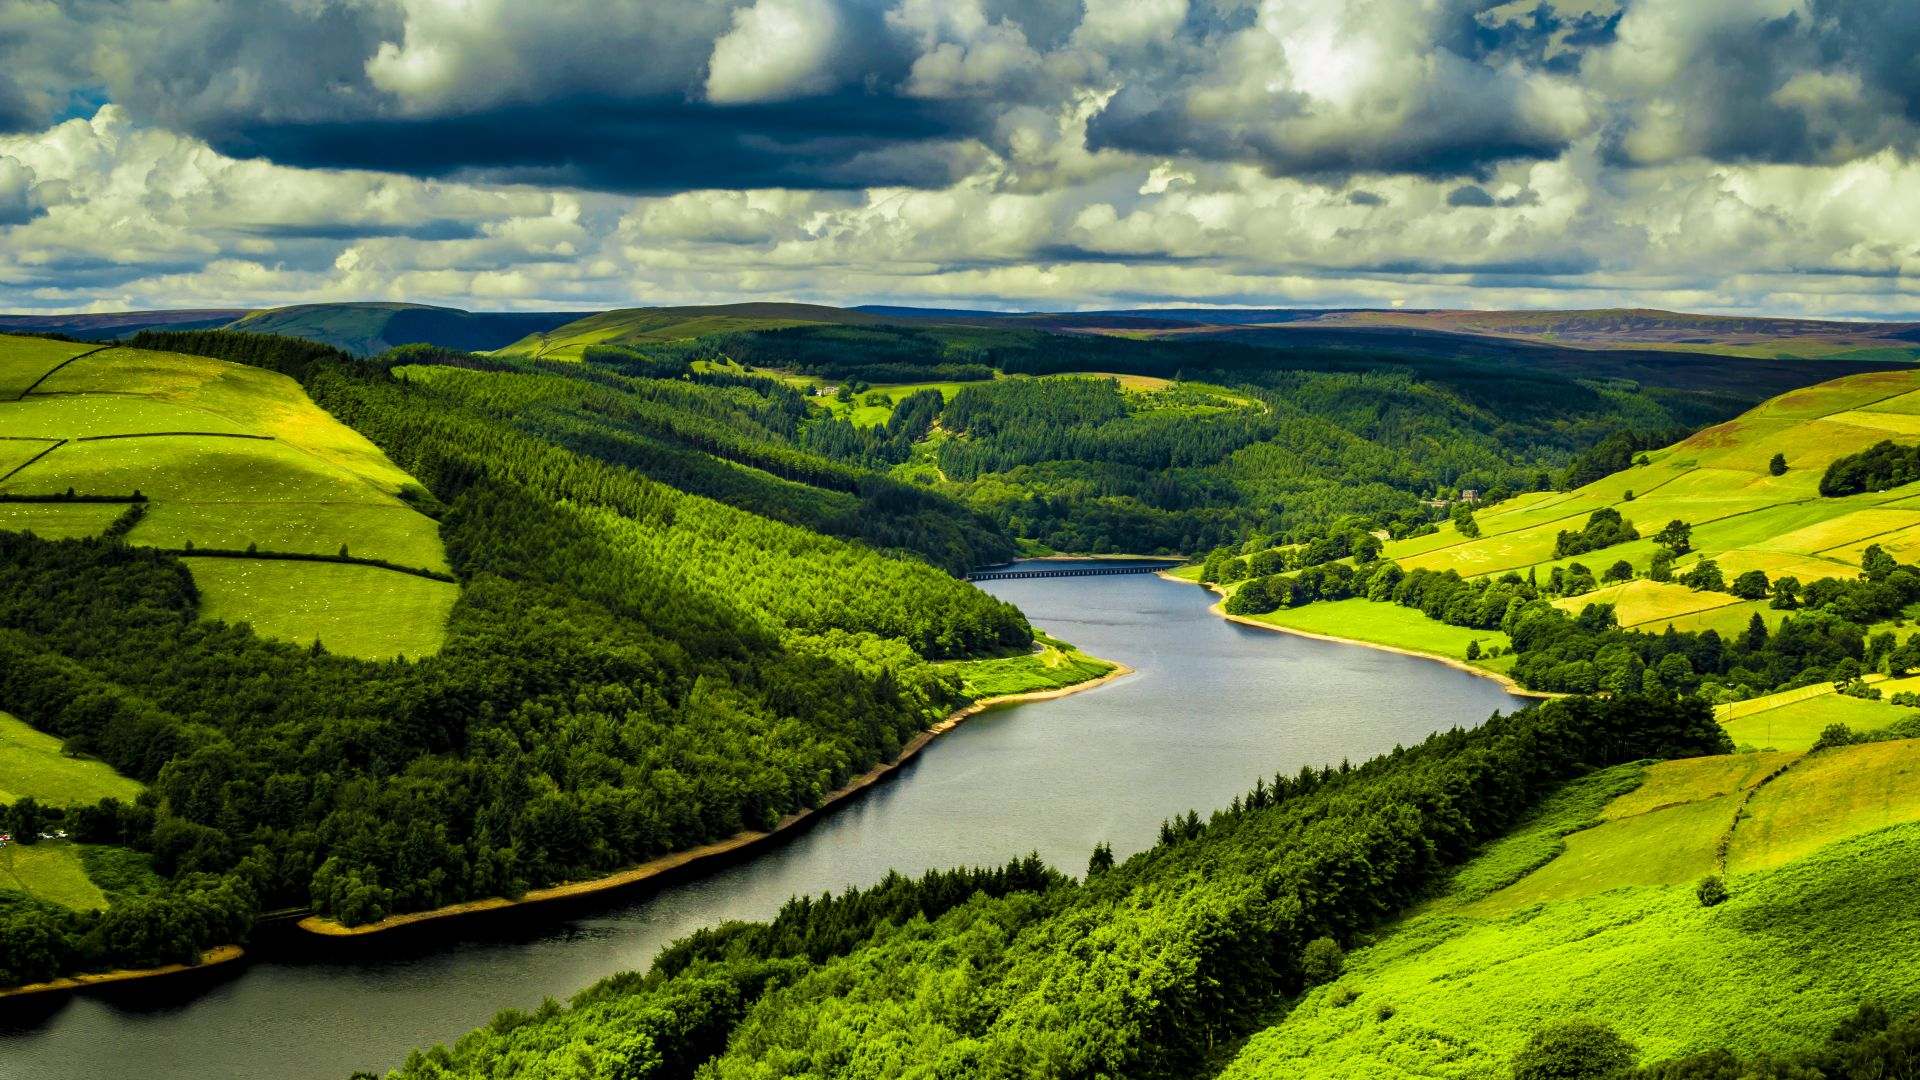 UK, 4k, HD wallpaper, hills, river, trees, sky (horizontal)